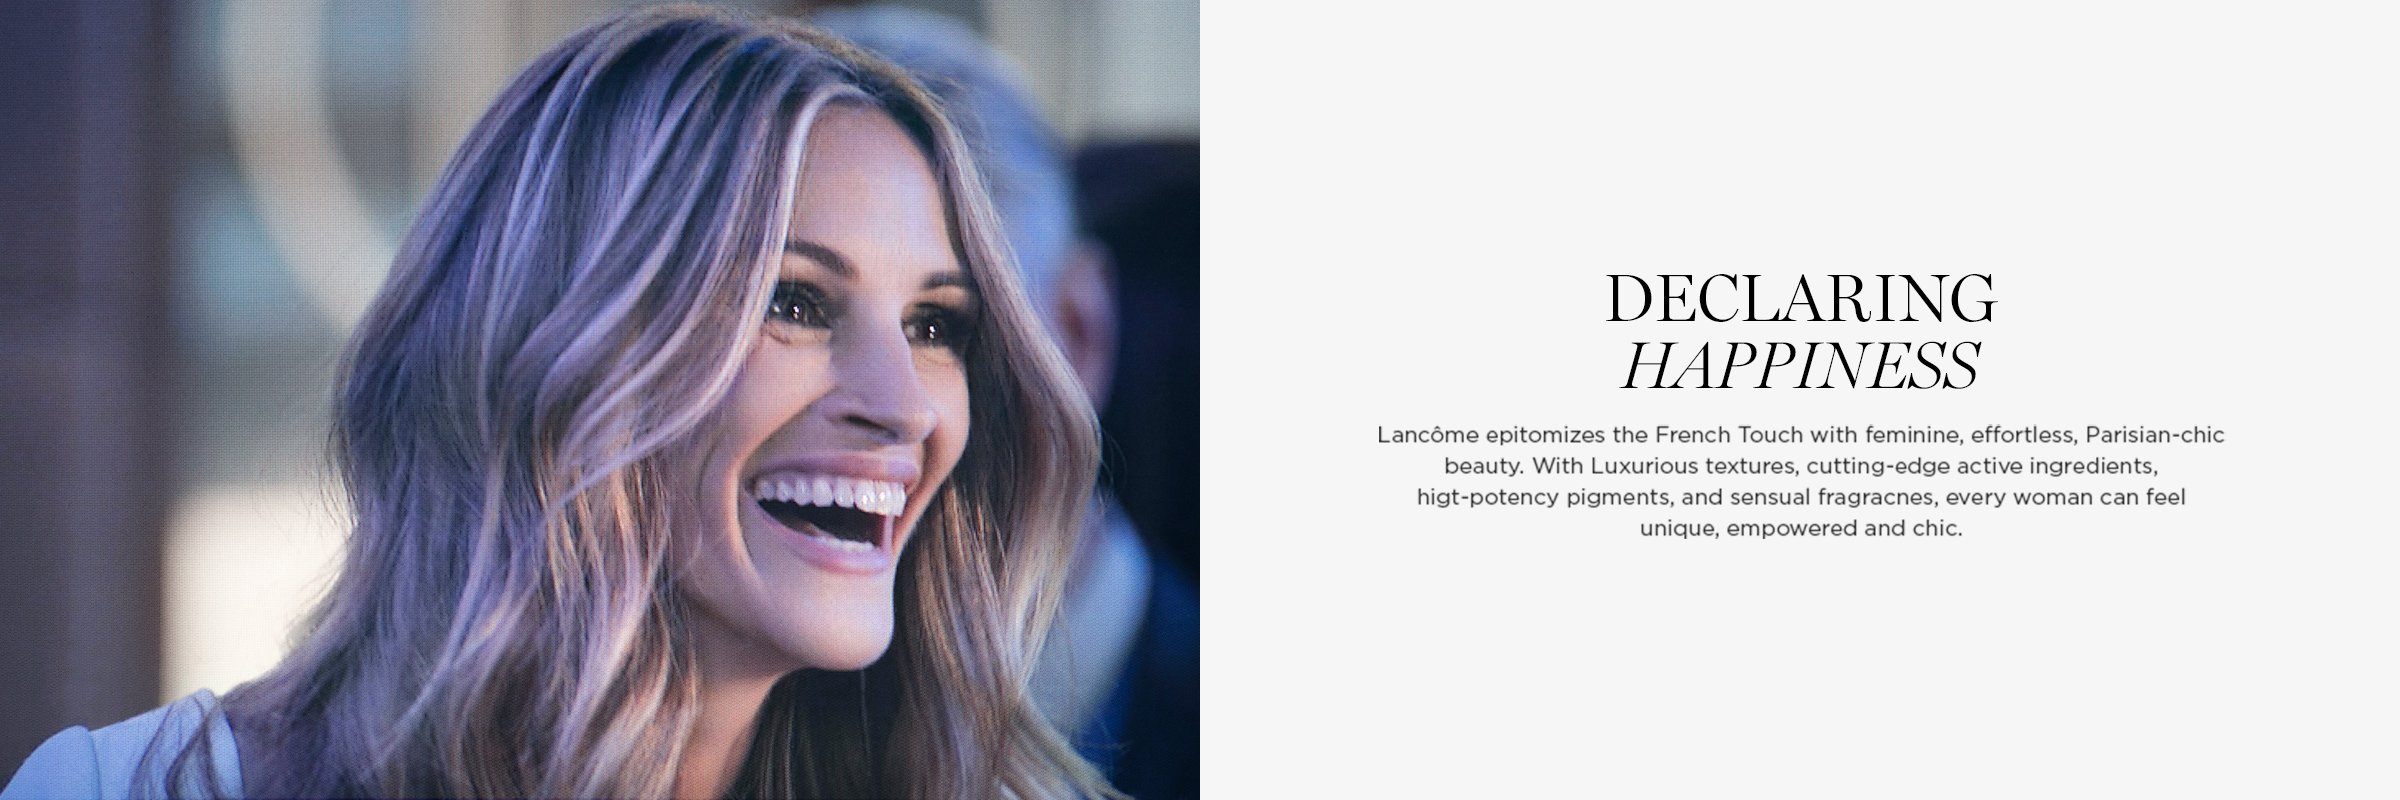 Lancome - Declaring Happiness